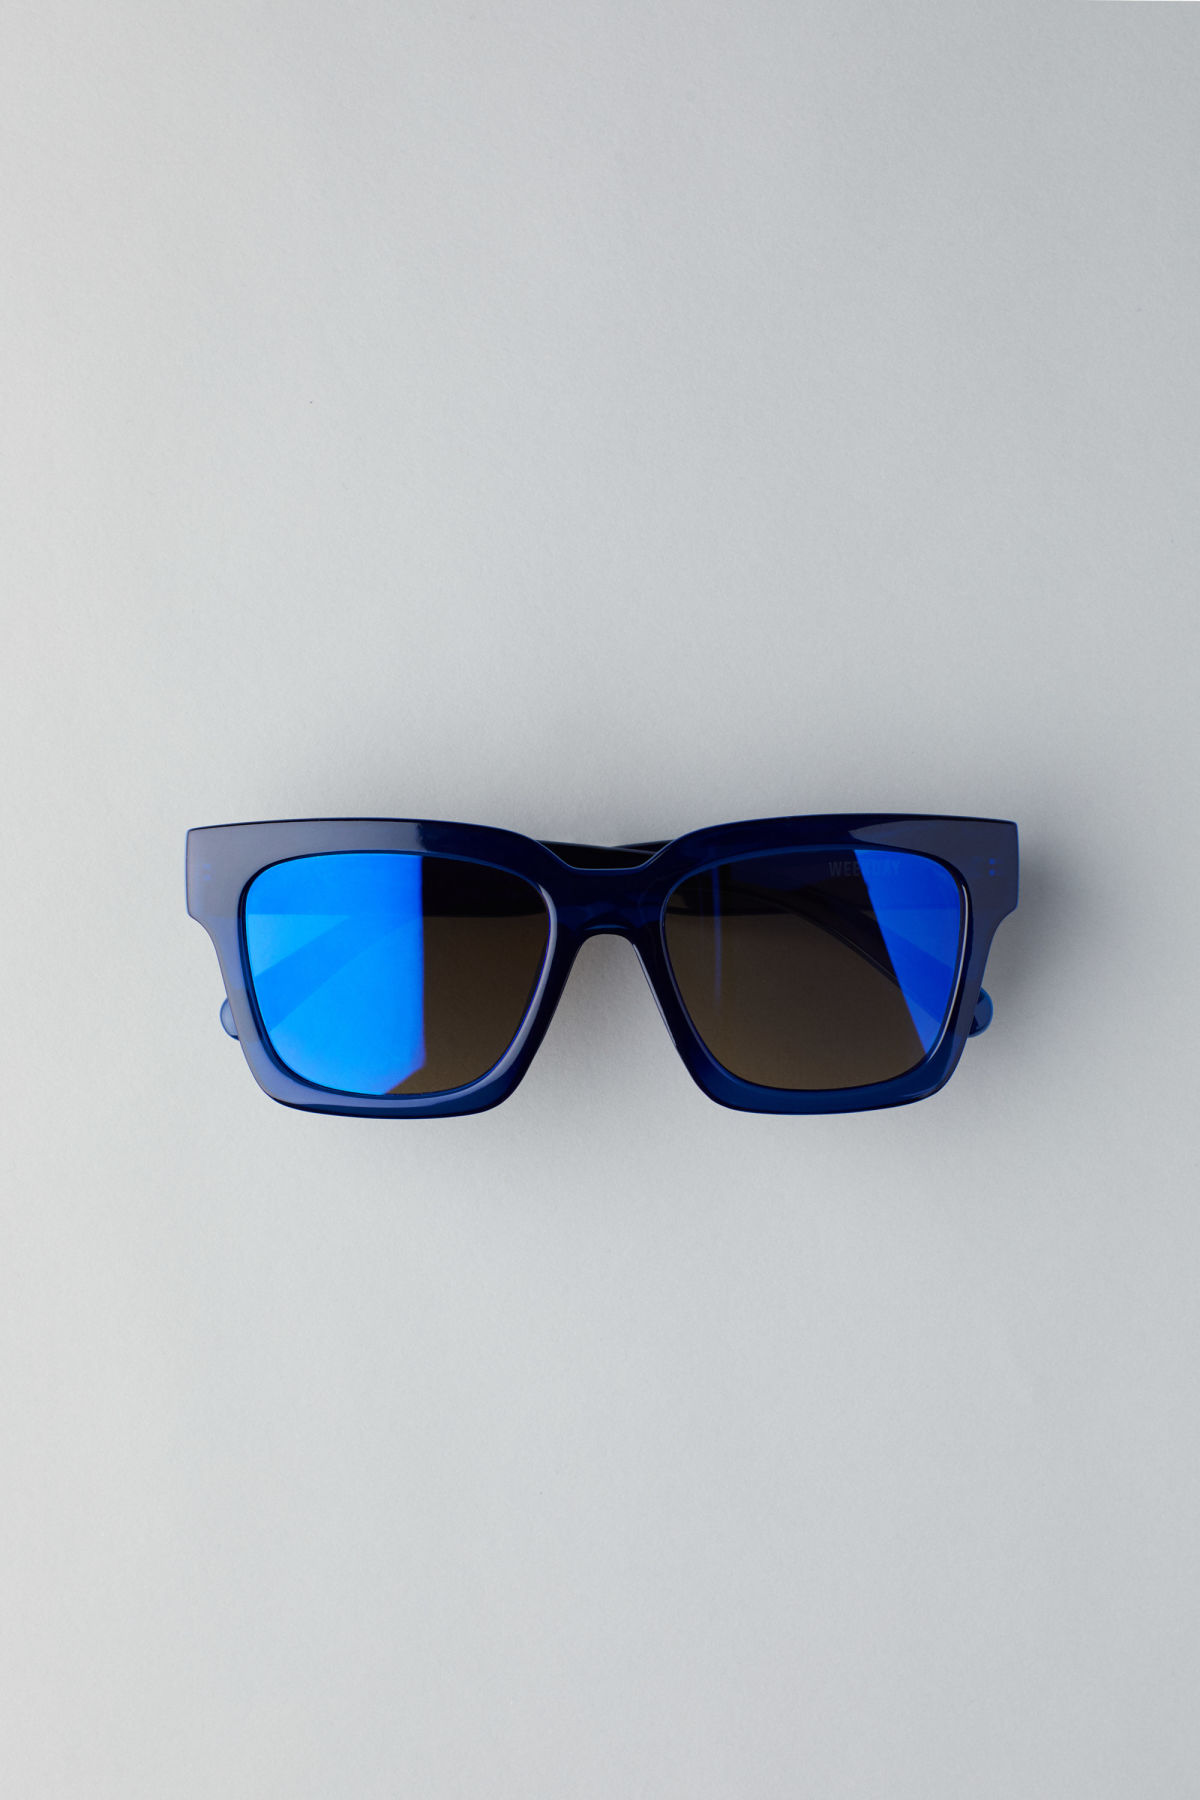 Weekday Exit Oversized Sunglasses - Blue g9R5g